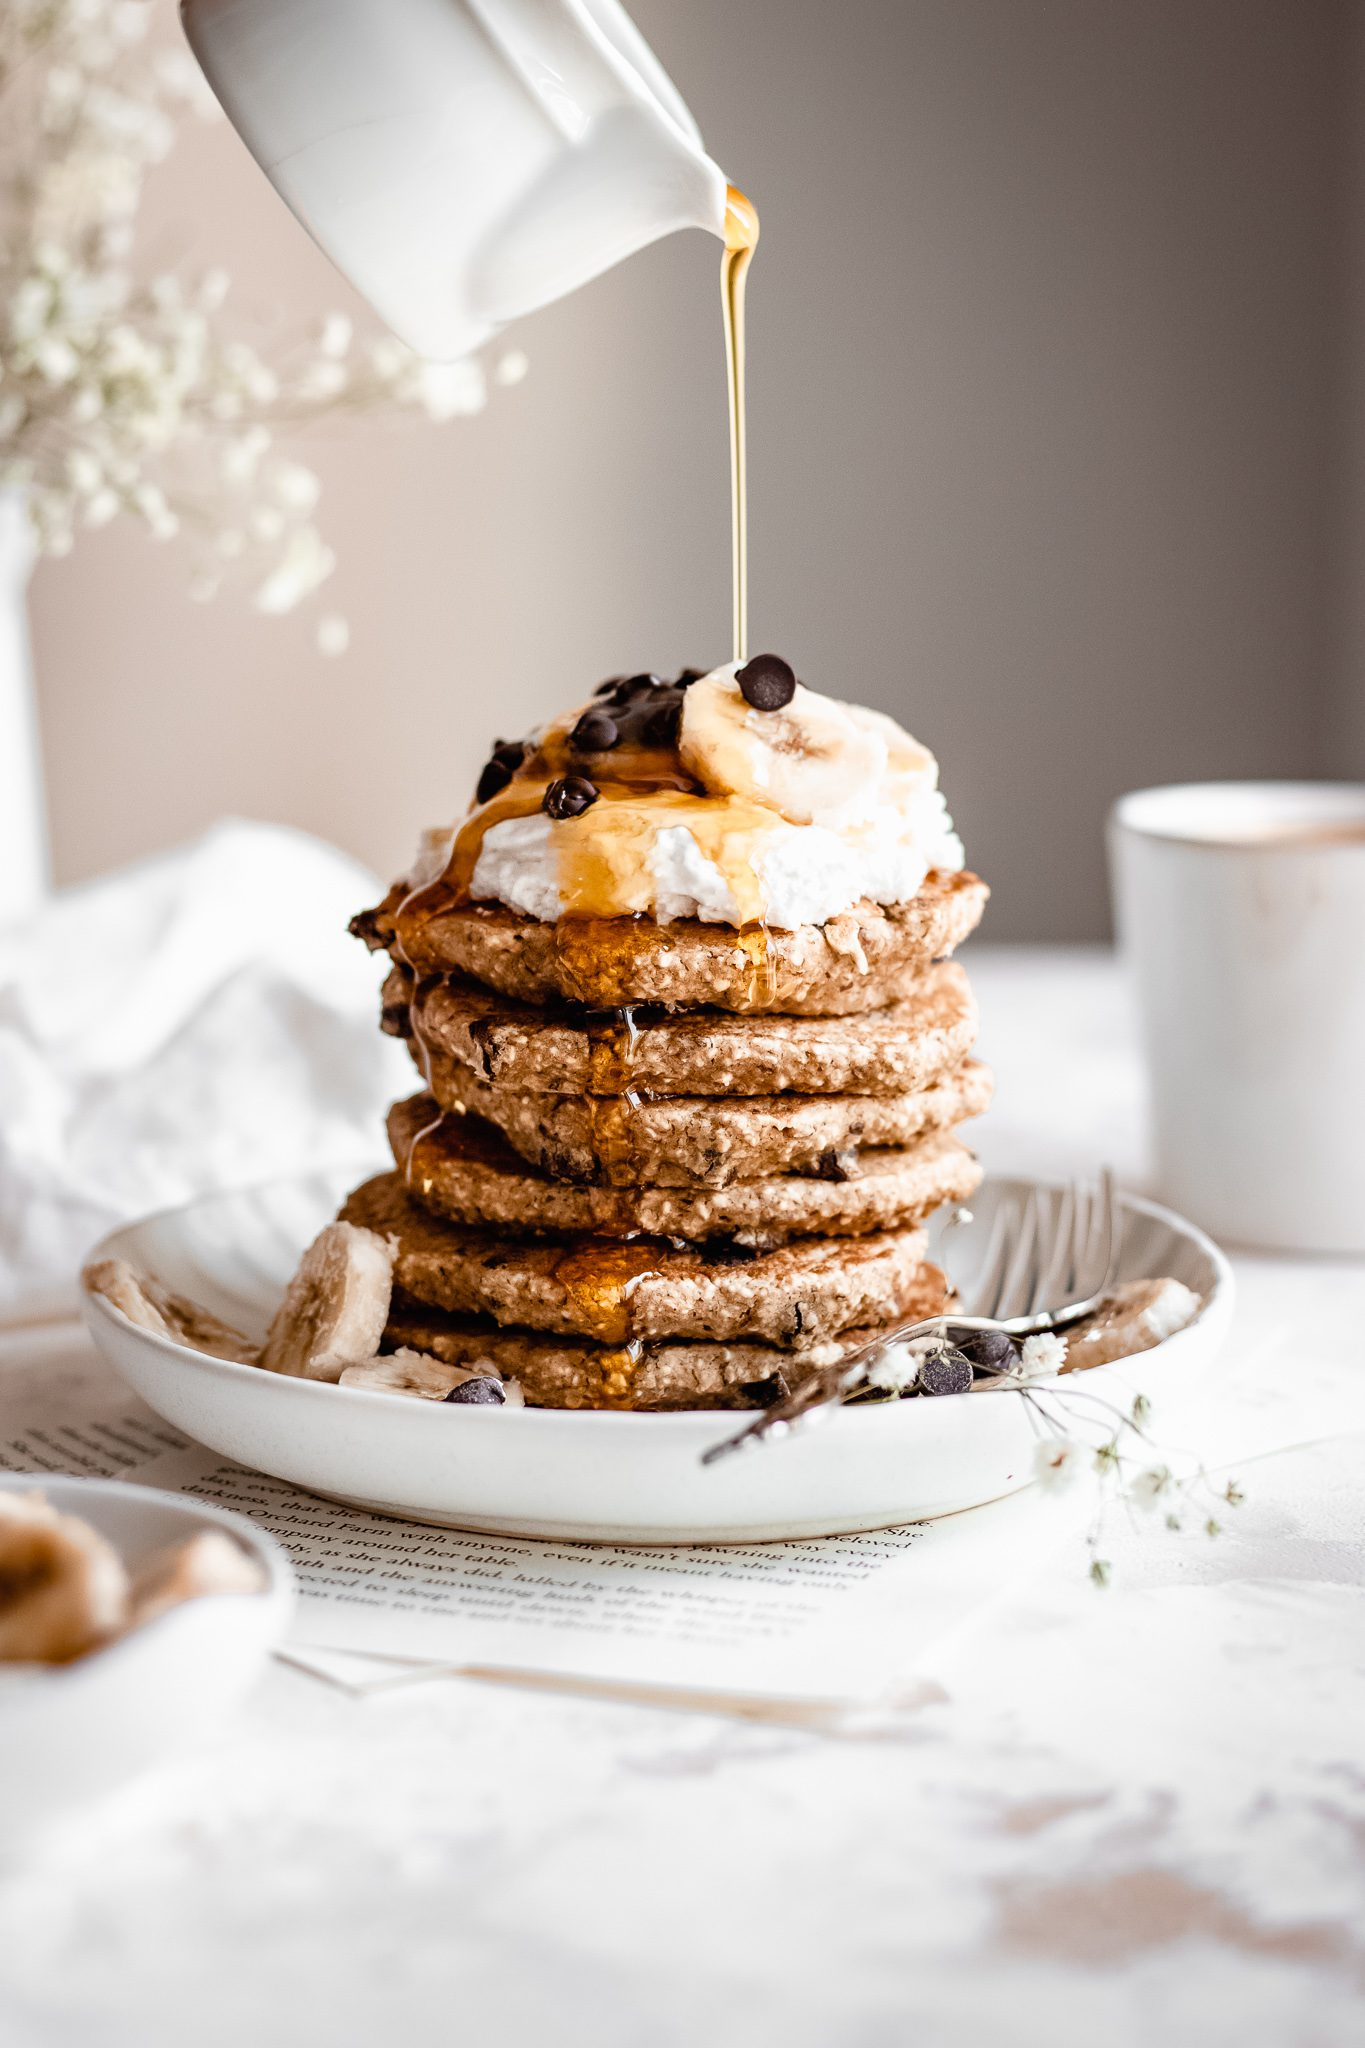 Healthy Vegan Chocolate Chip Pancakes